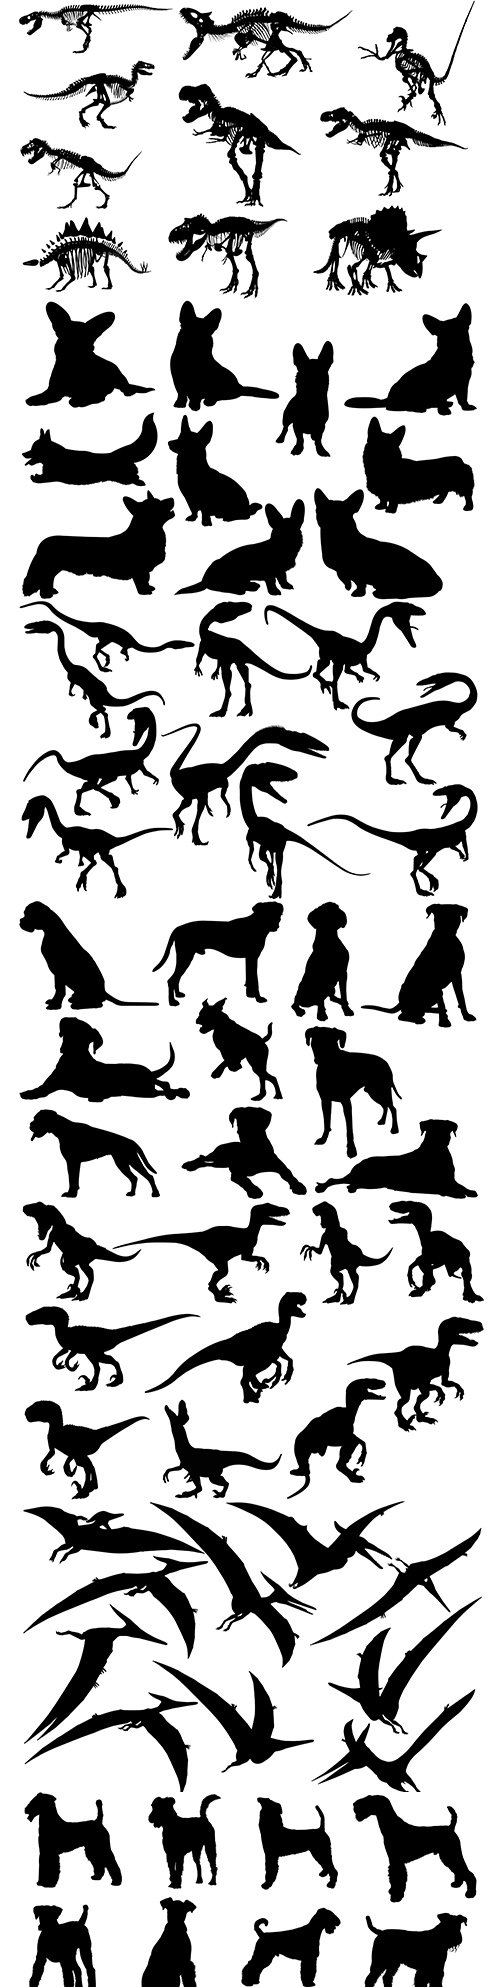 Dinosaur and dogs collection black silhouettes